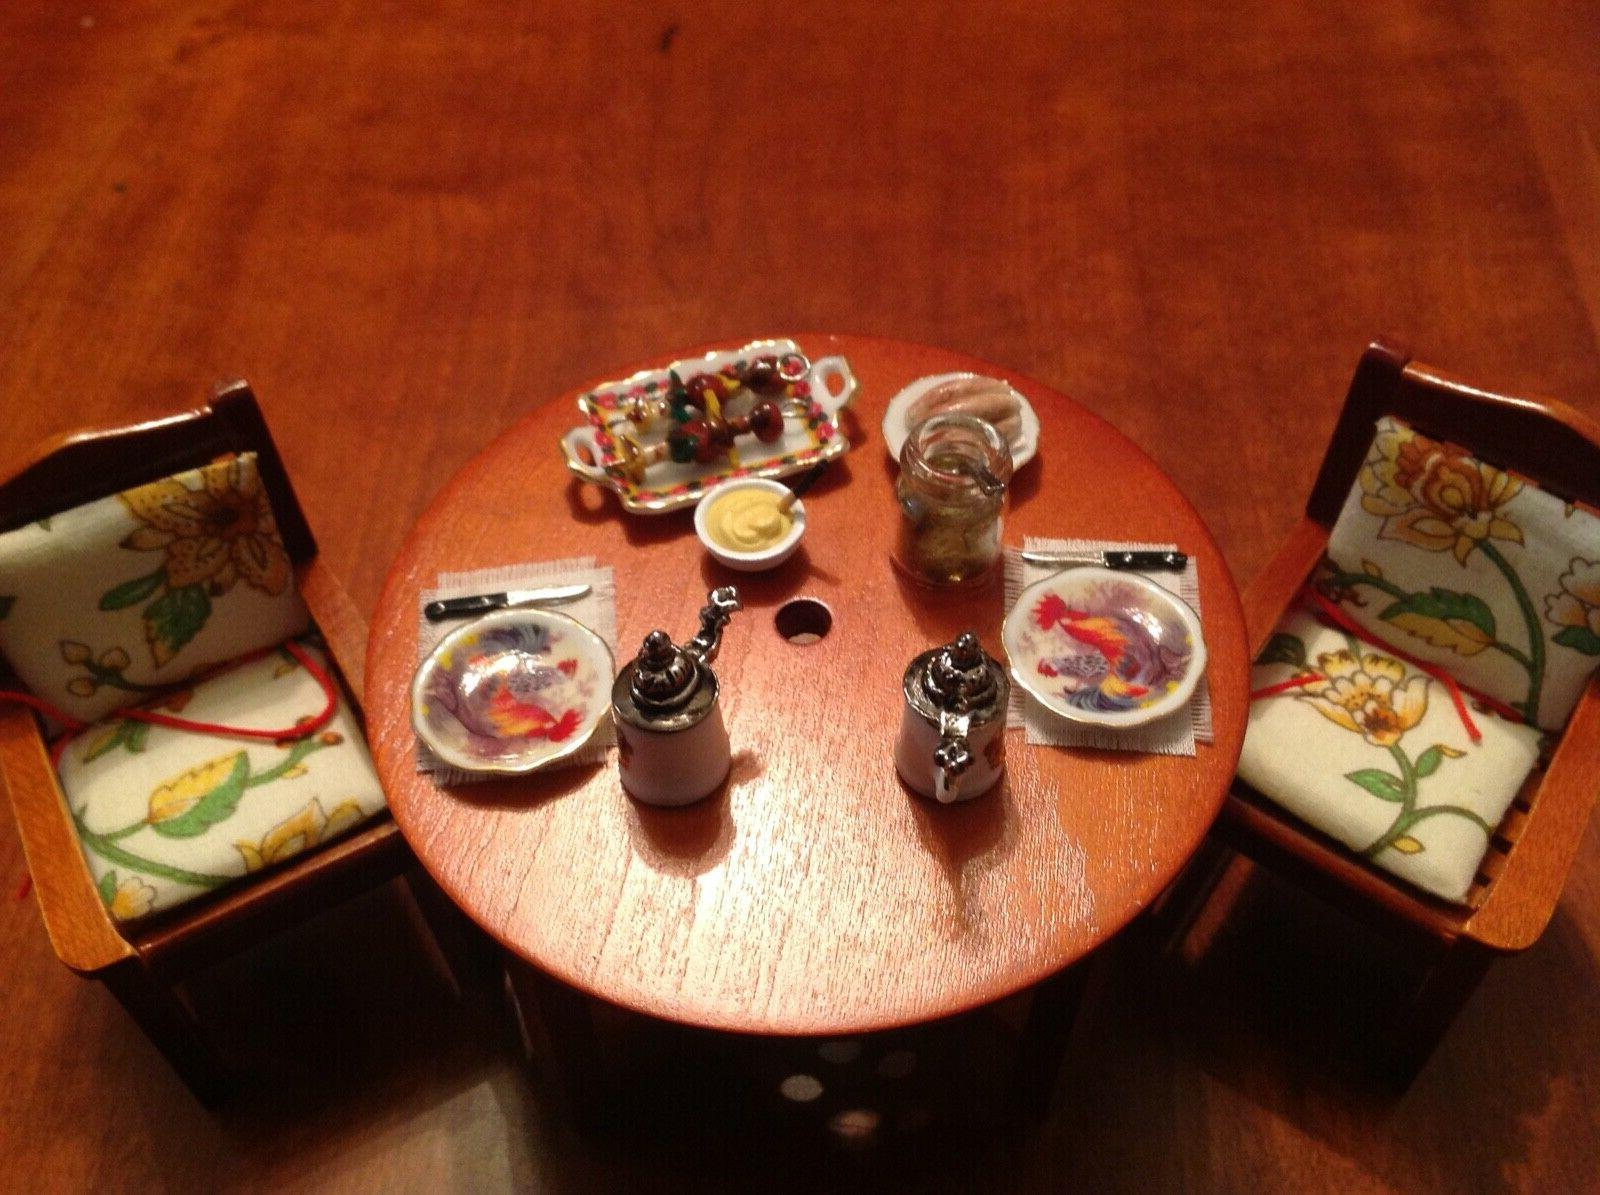 Dollhouse Table with Umbrella Two